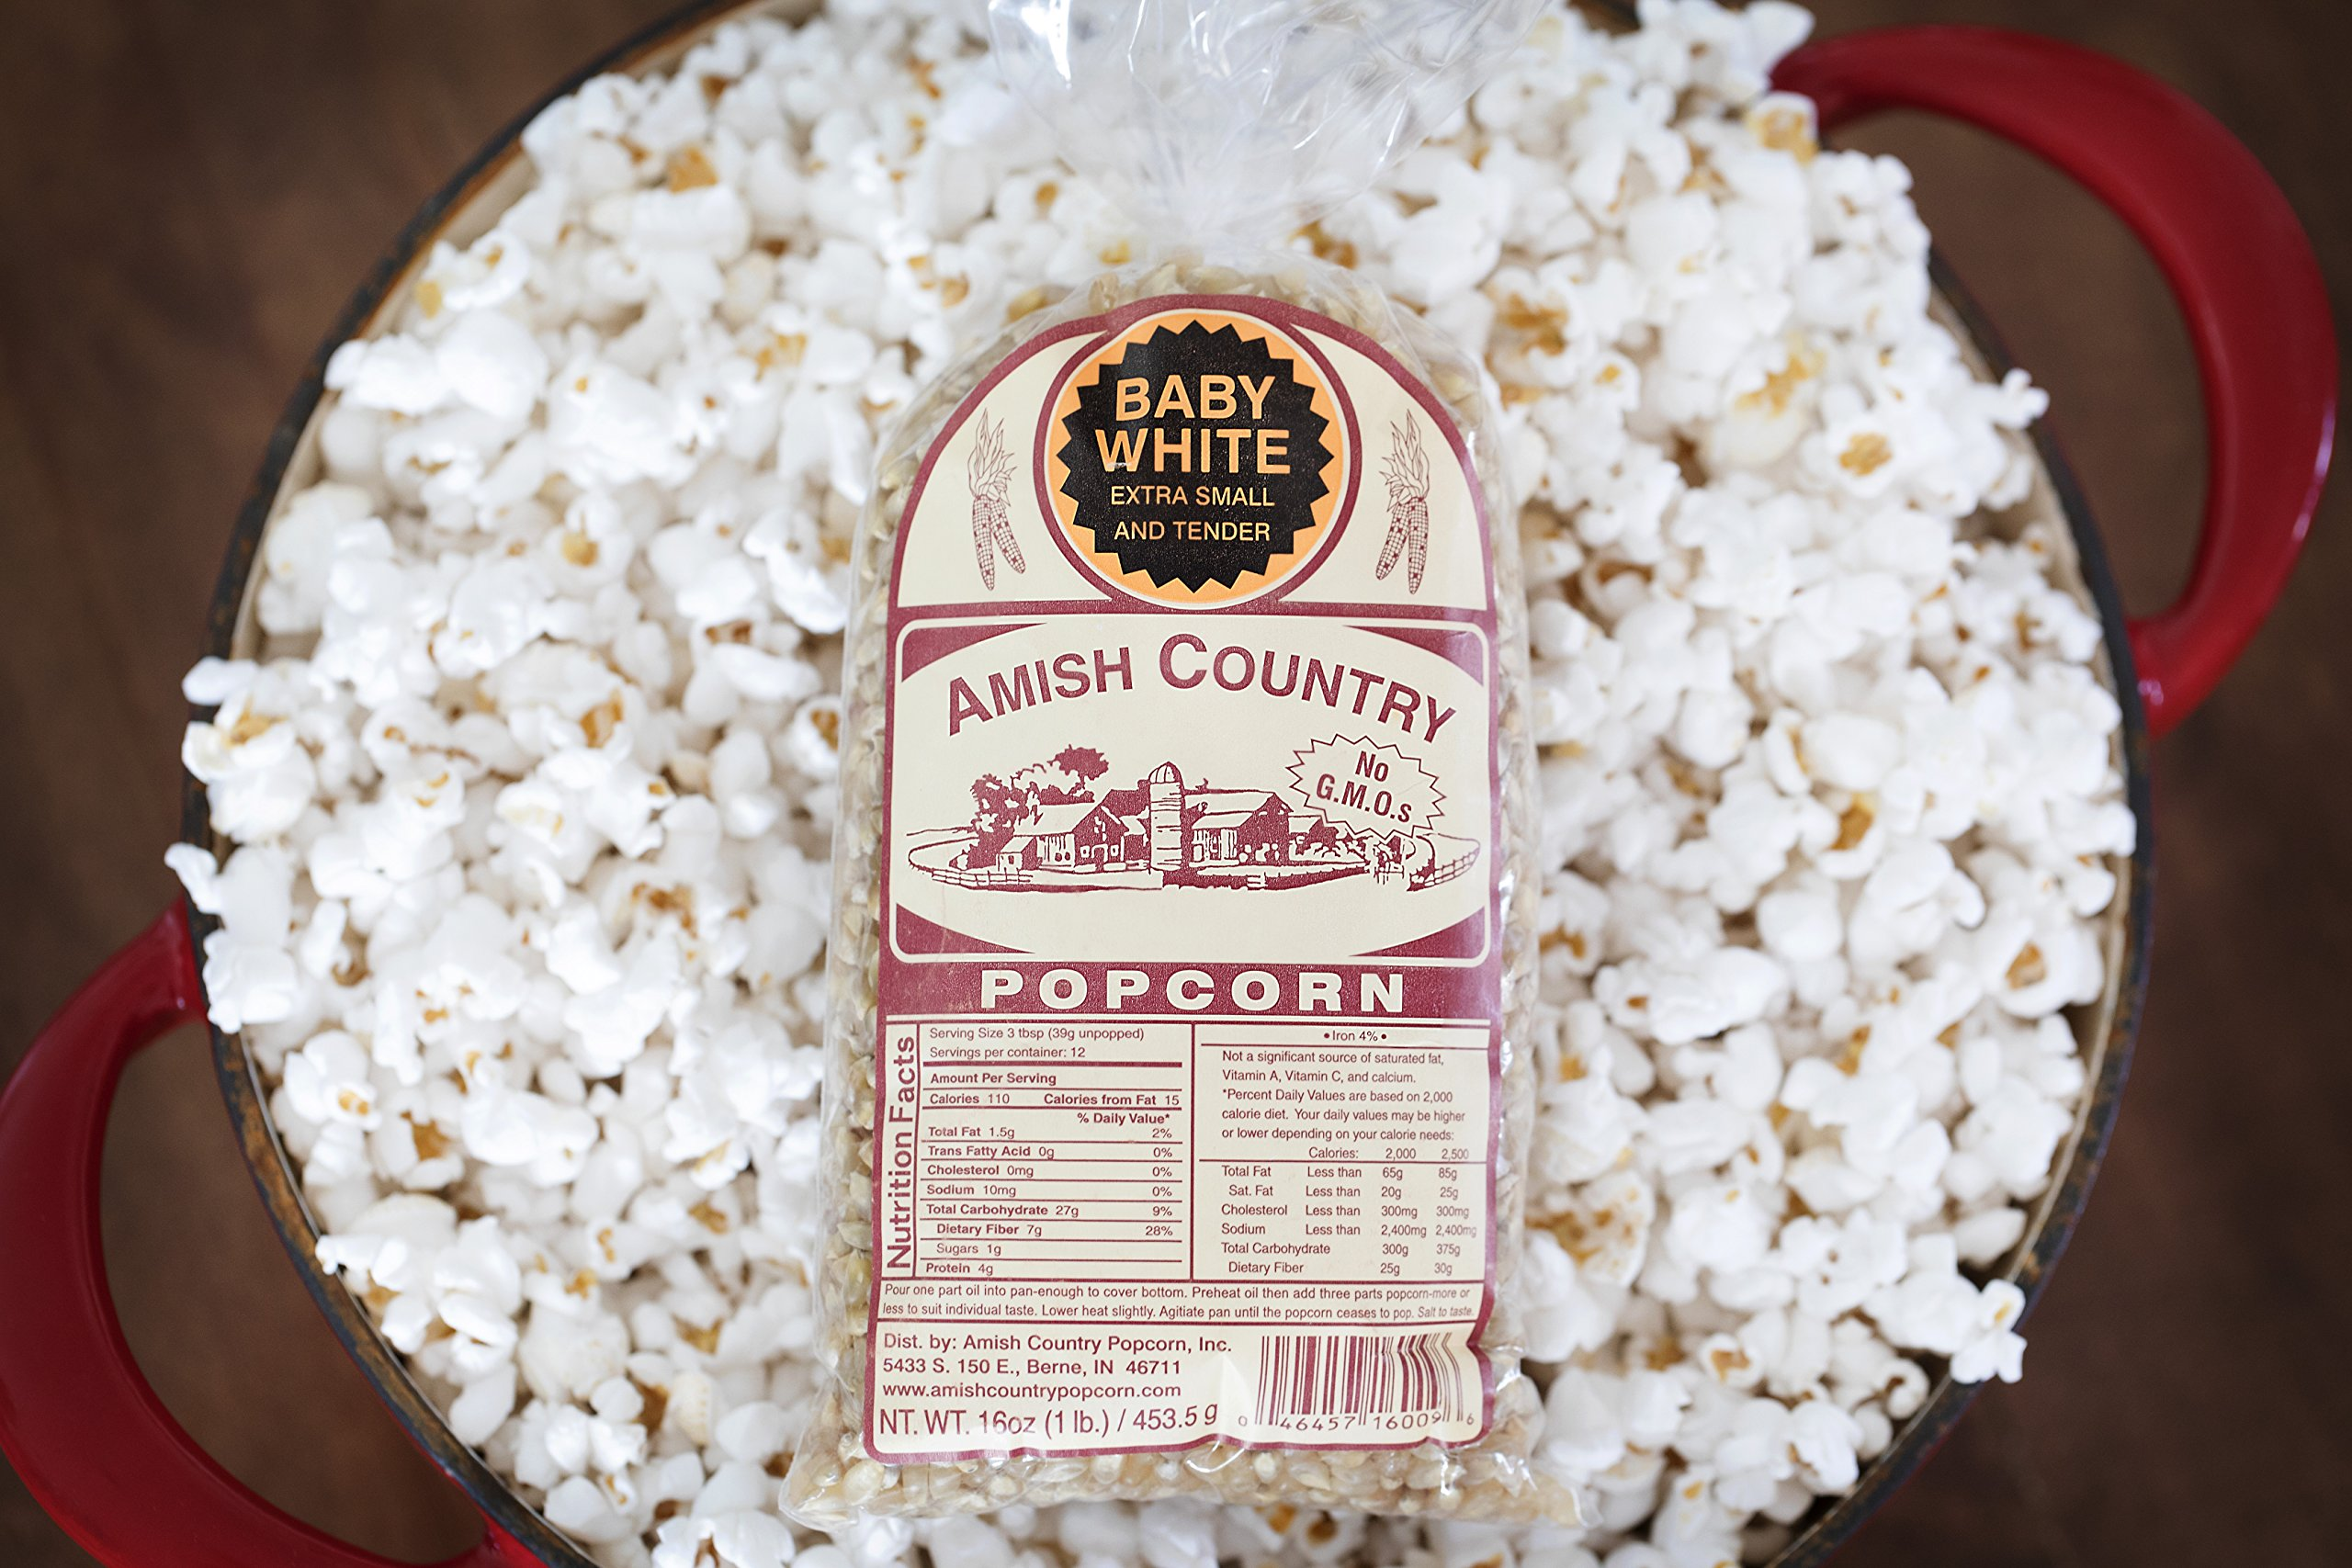 Amish Country Popcorn - Baby White (1 Pound Bag) Small & Tender Popcorn - Old Fashioned And Delicious, with Recipe Guide by Amish Country Popcorn (Image #4)